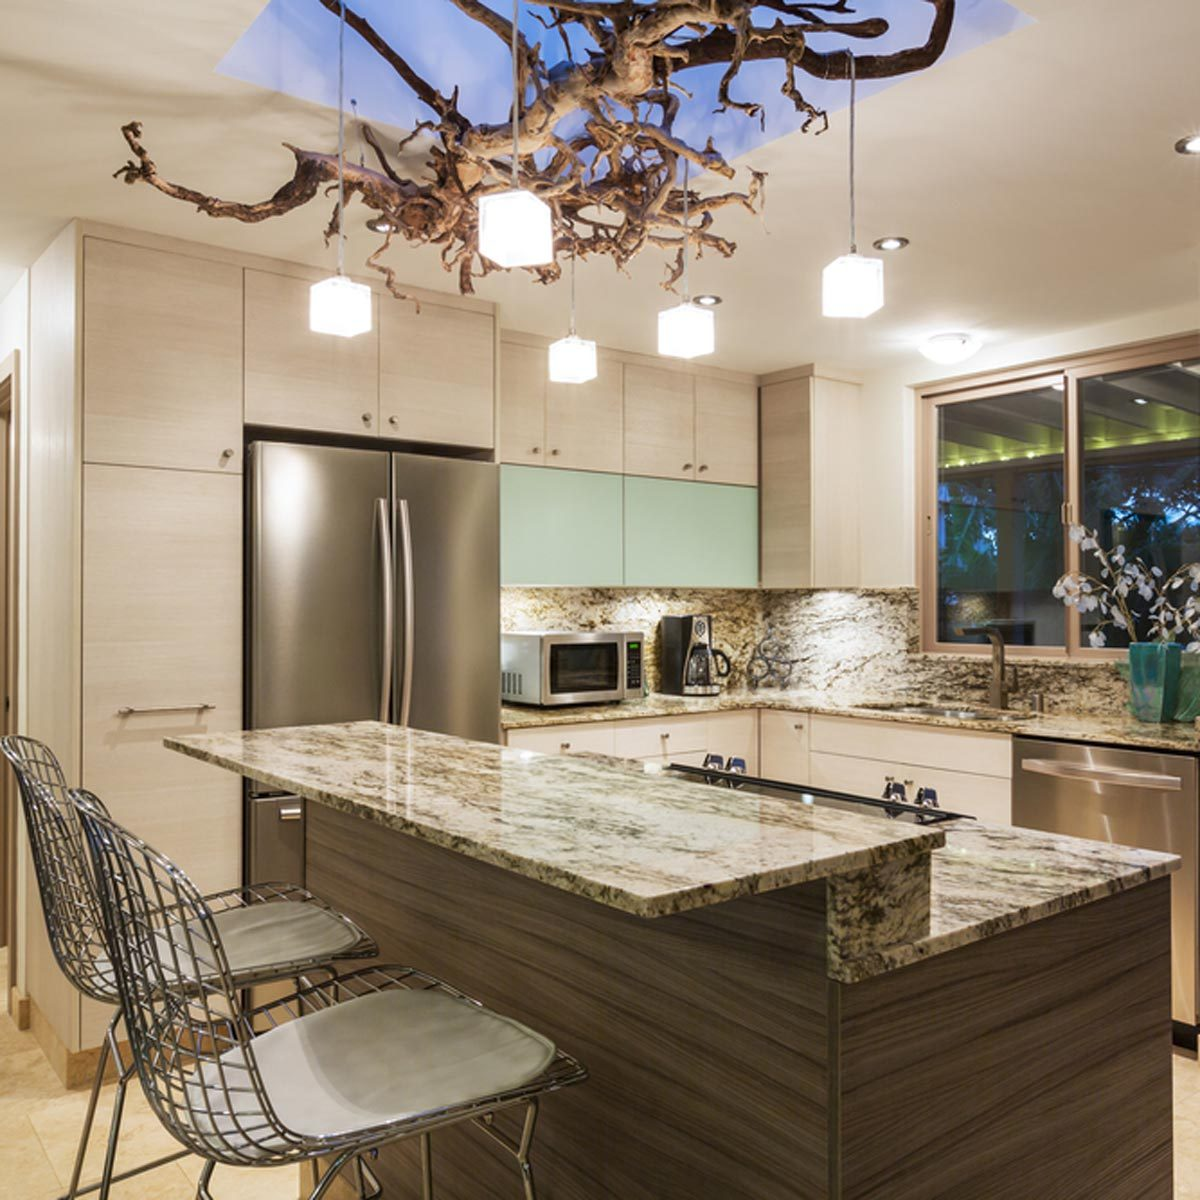 12 Inspiring Kitchen Island Ideas The Family Handyman